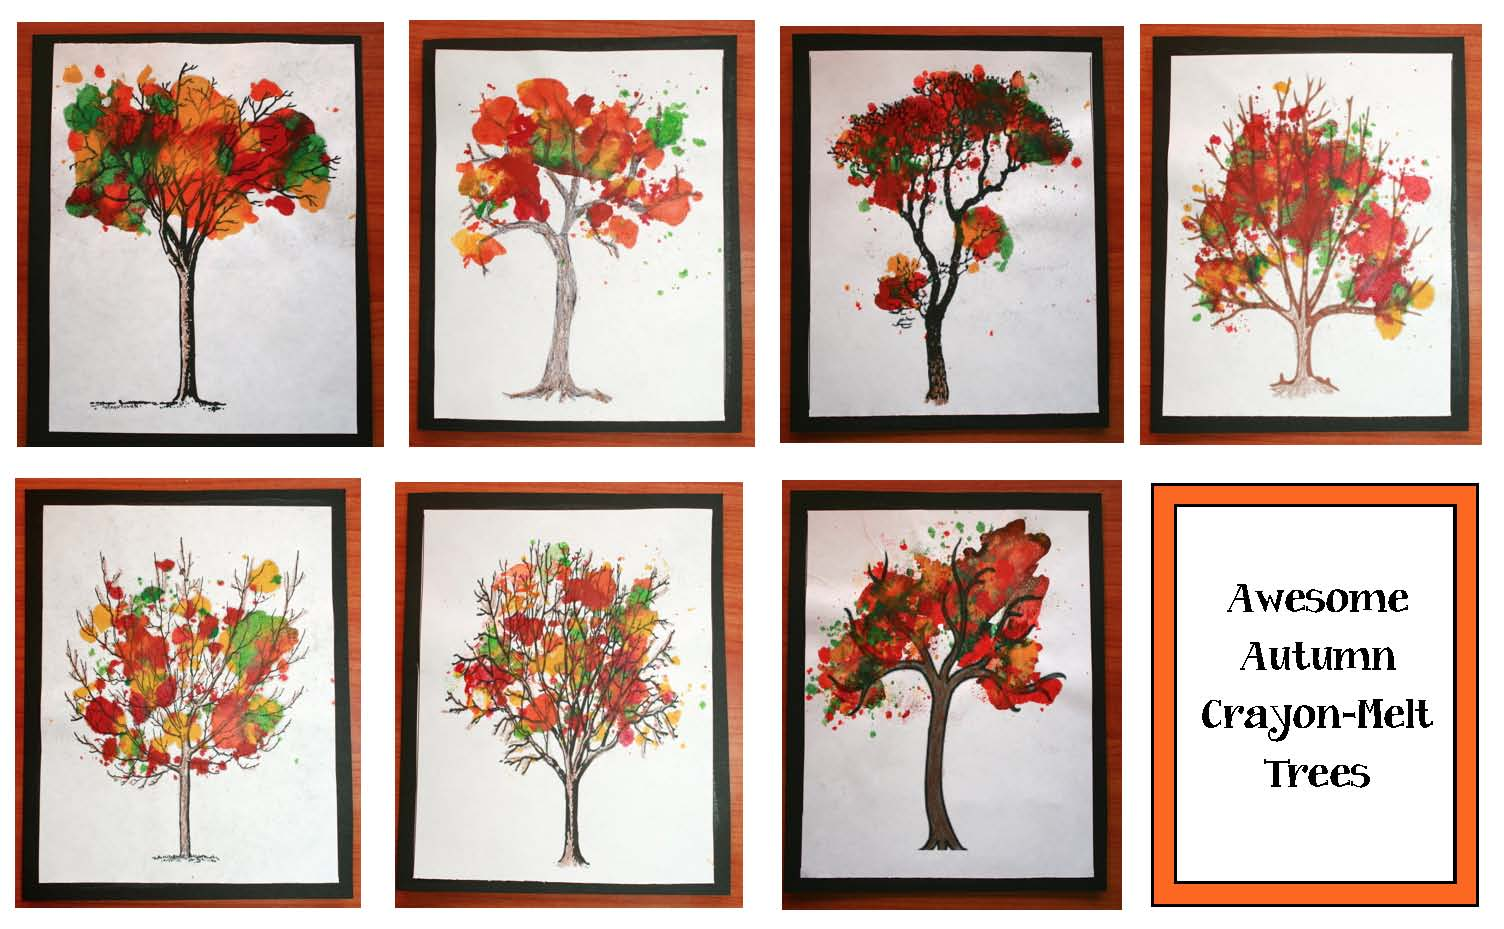 fall arts and crafts, leaf activities, leaf crafts, fall crafts, chlorophyll activities, fall bulletin boards, ideas for october bulletin boards, fall leaf bulletin boards,melted crayon activities